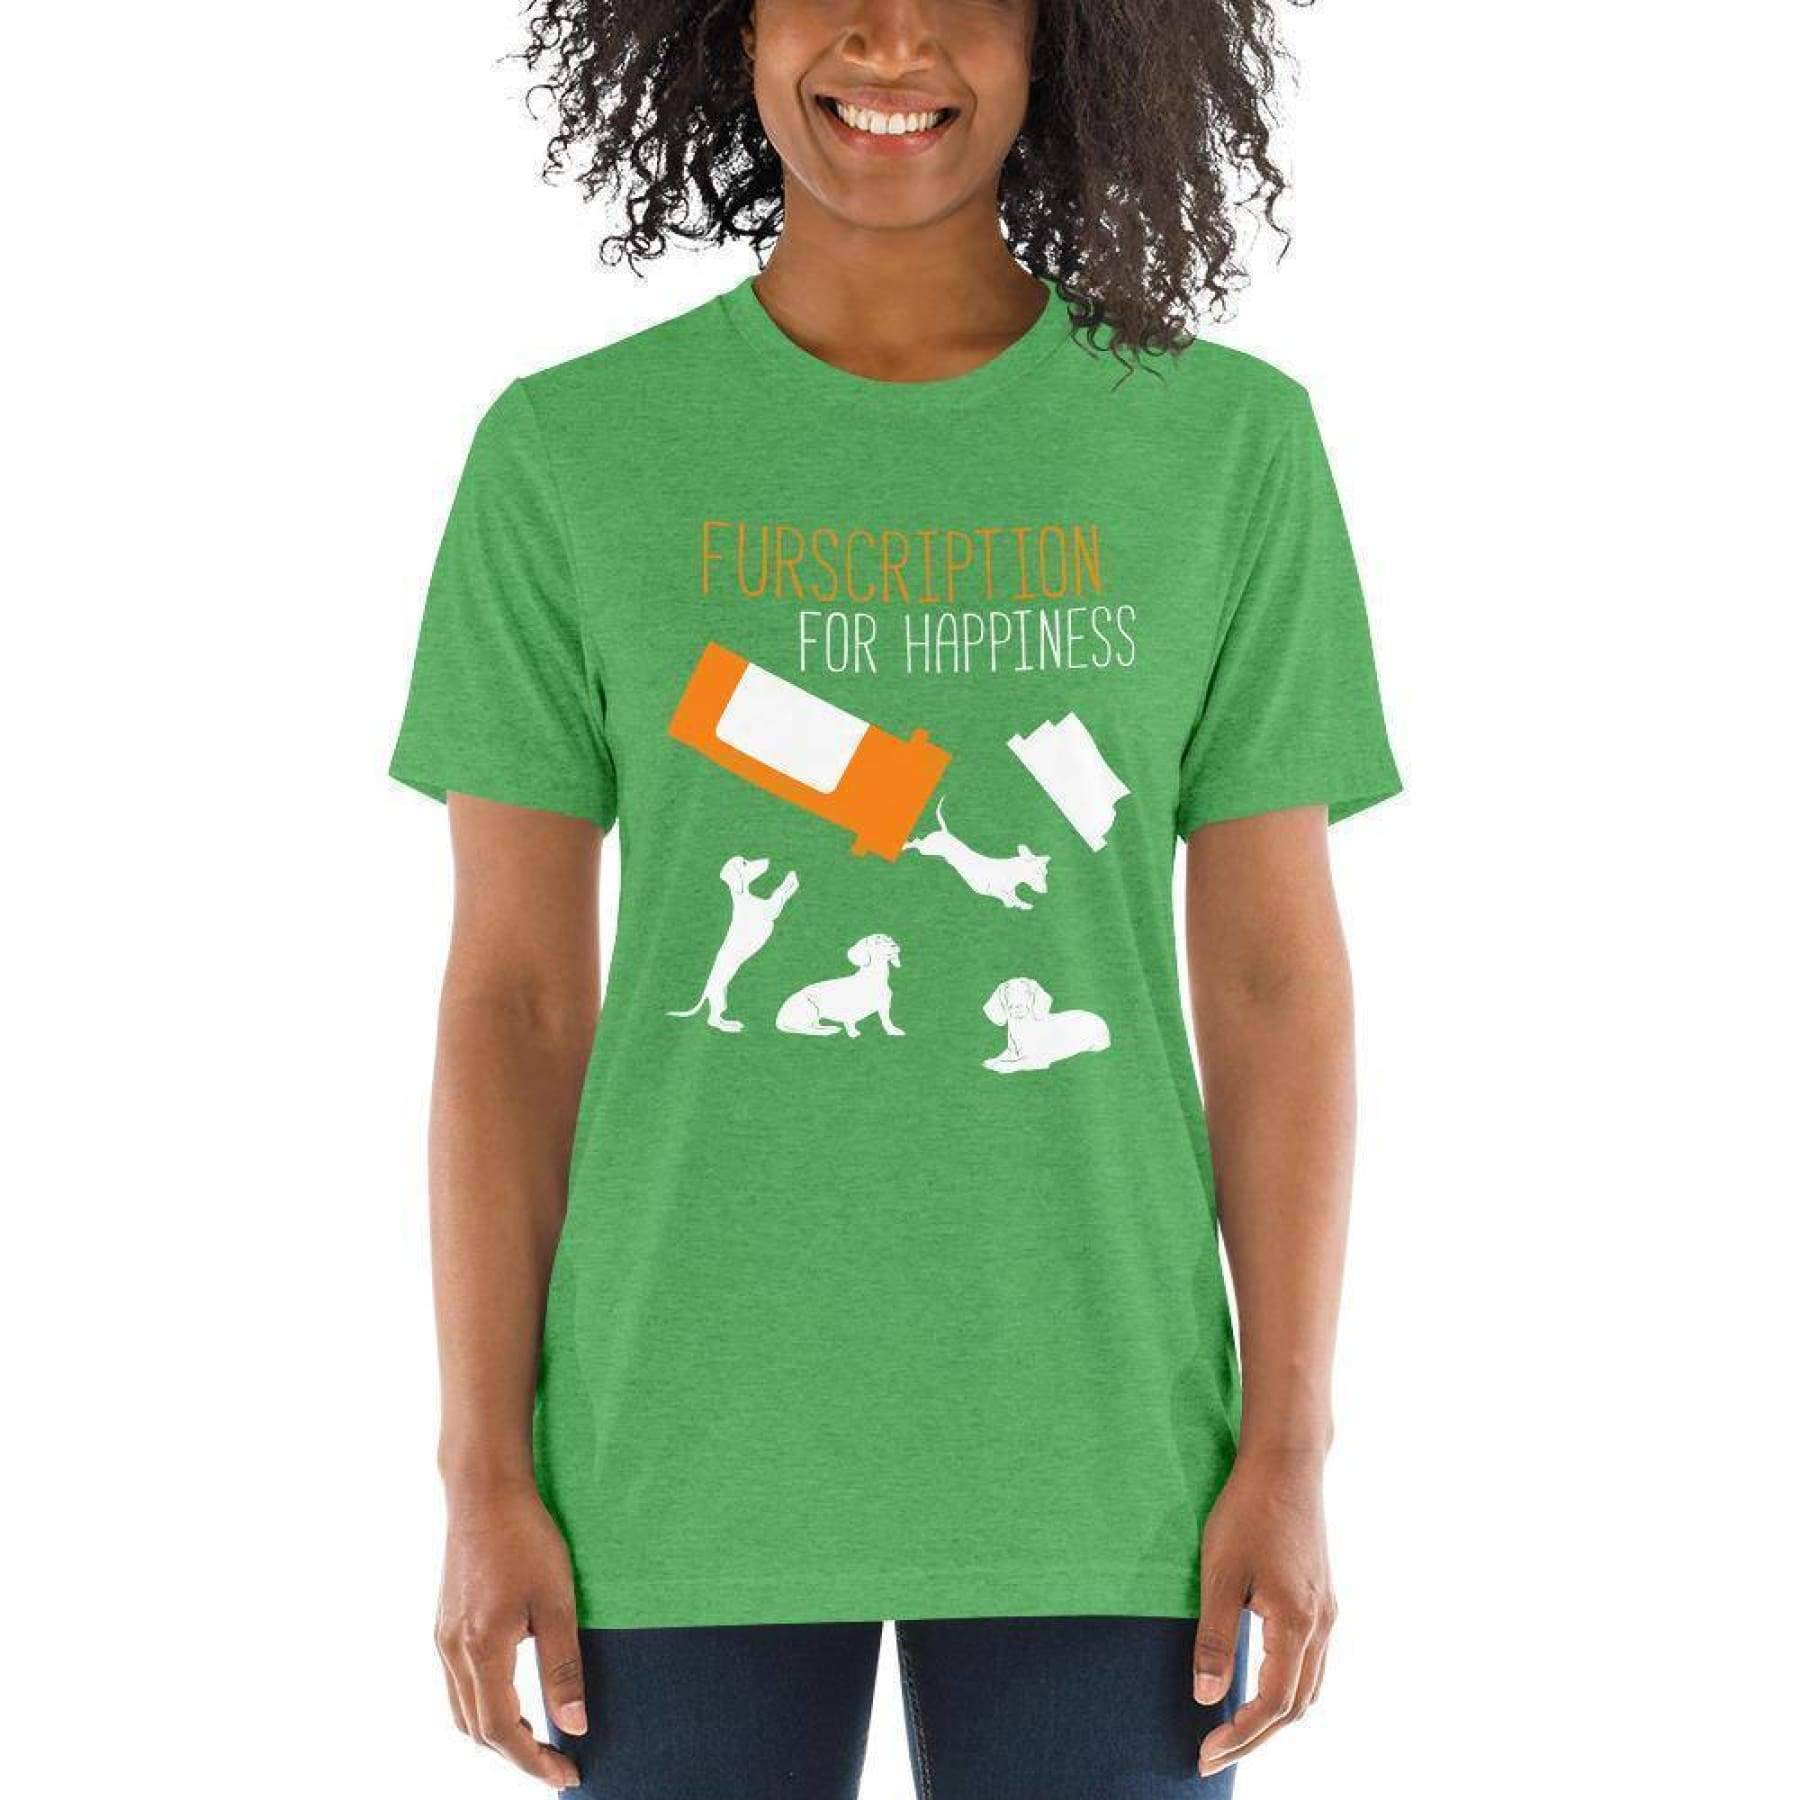 Furscription For Happiness - Furbaby Tees.